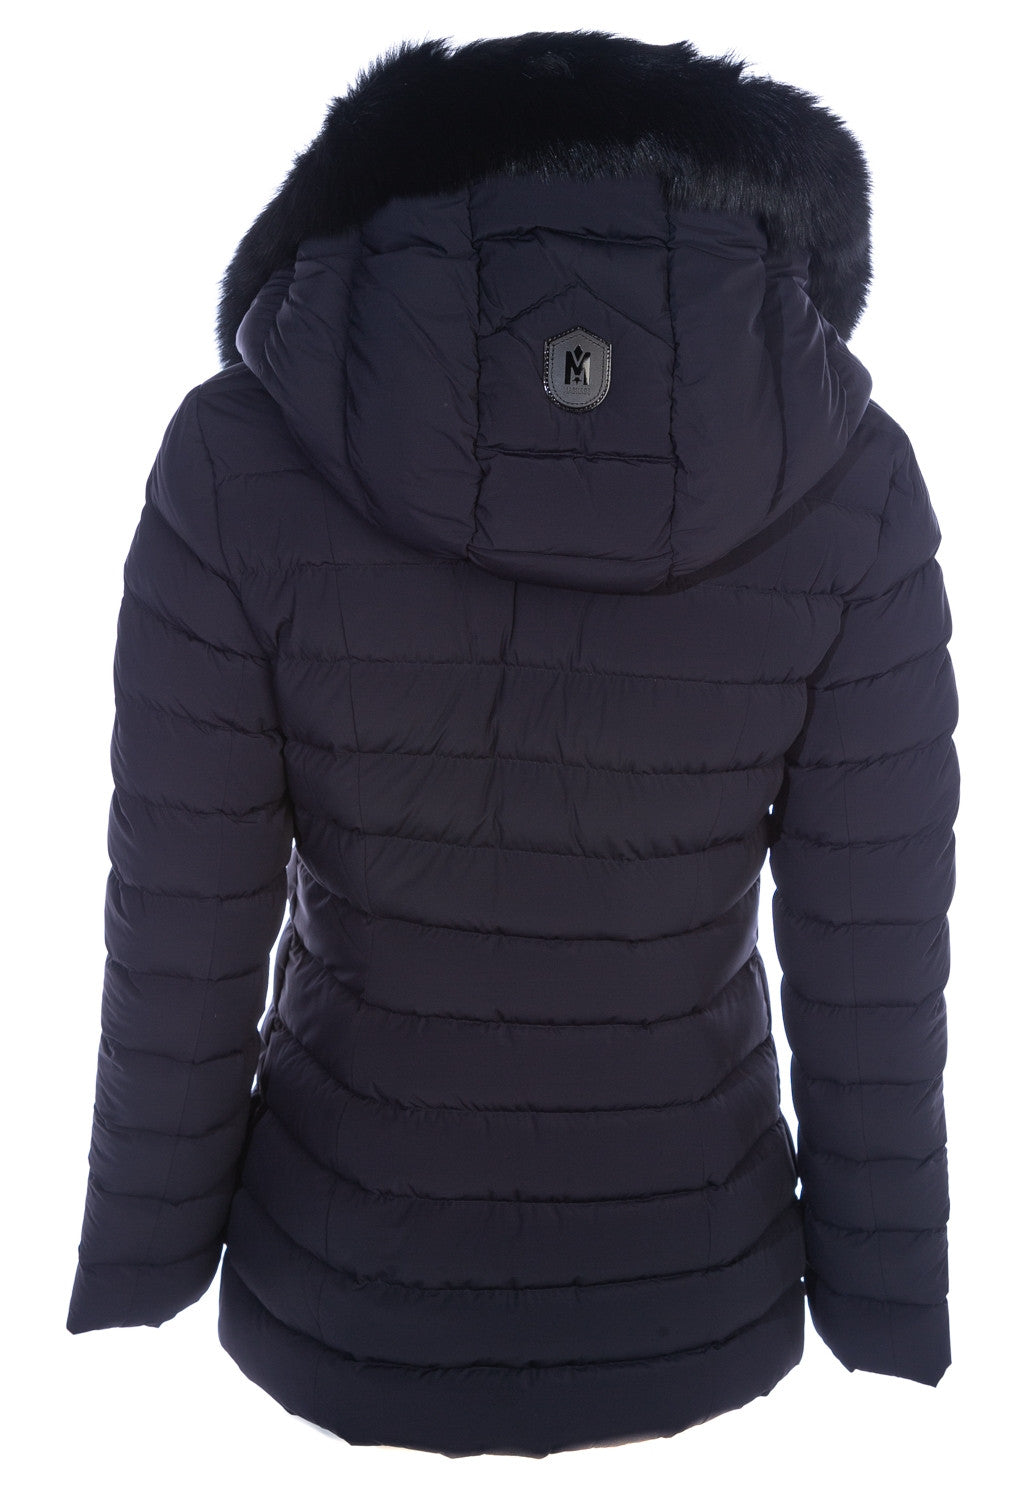 MACKAGE KADALINA-BX WOMEN'S DOWN JACKET W/ BLUE FOX FUR COLLAR KADALINA-BX-Navy